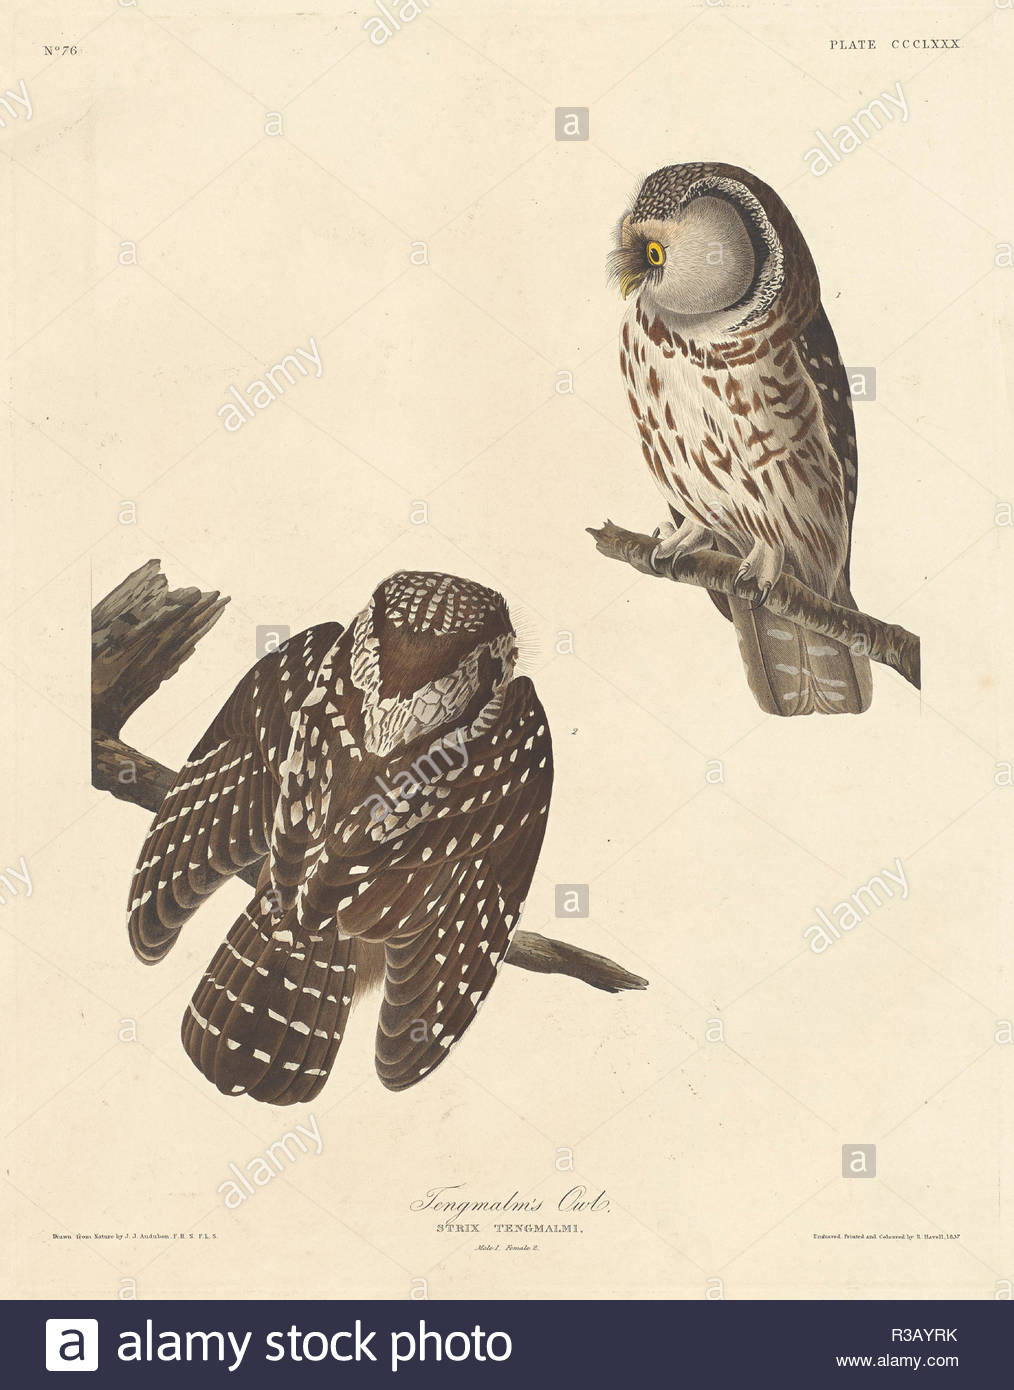 Tengmalm's Owl. Stand: 1837. Medium: Handcolorierte Radierung und Aquatinta auf Whatman Papier. Museum: Nationalgalerie, Washington DC. Autor: Robert Havell nach John James Audubon. Stockbild